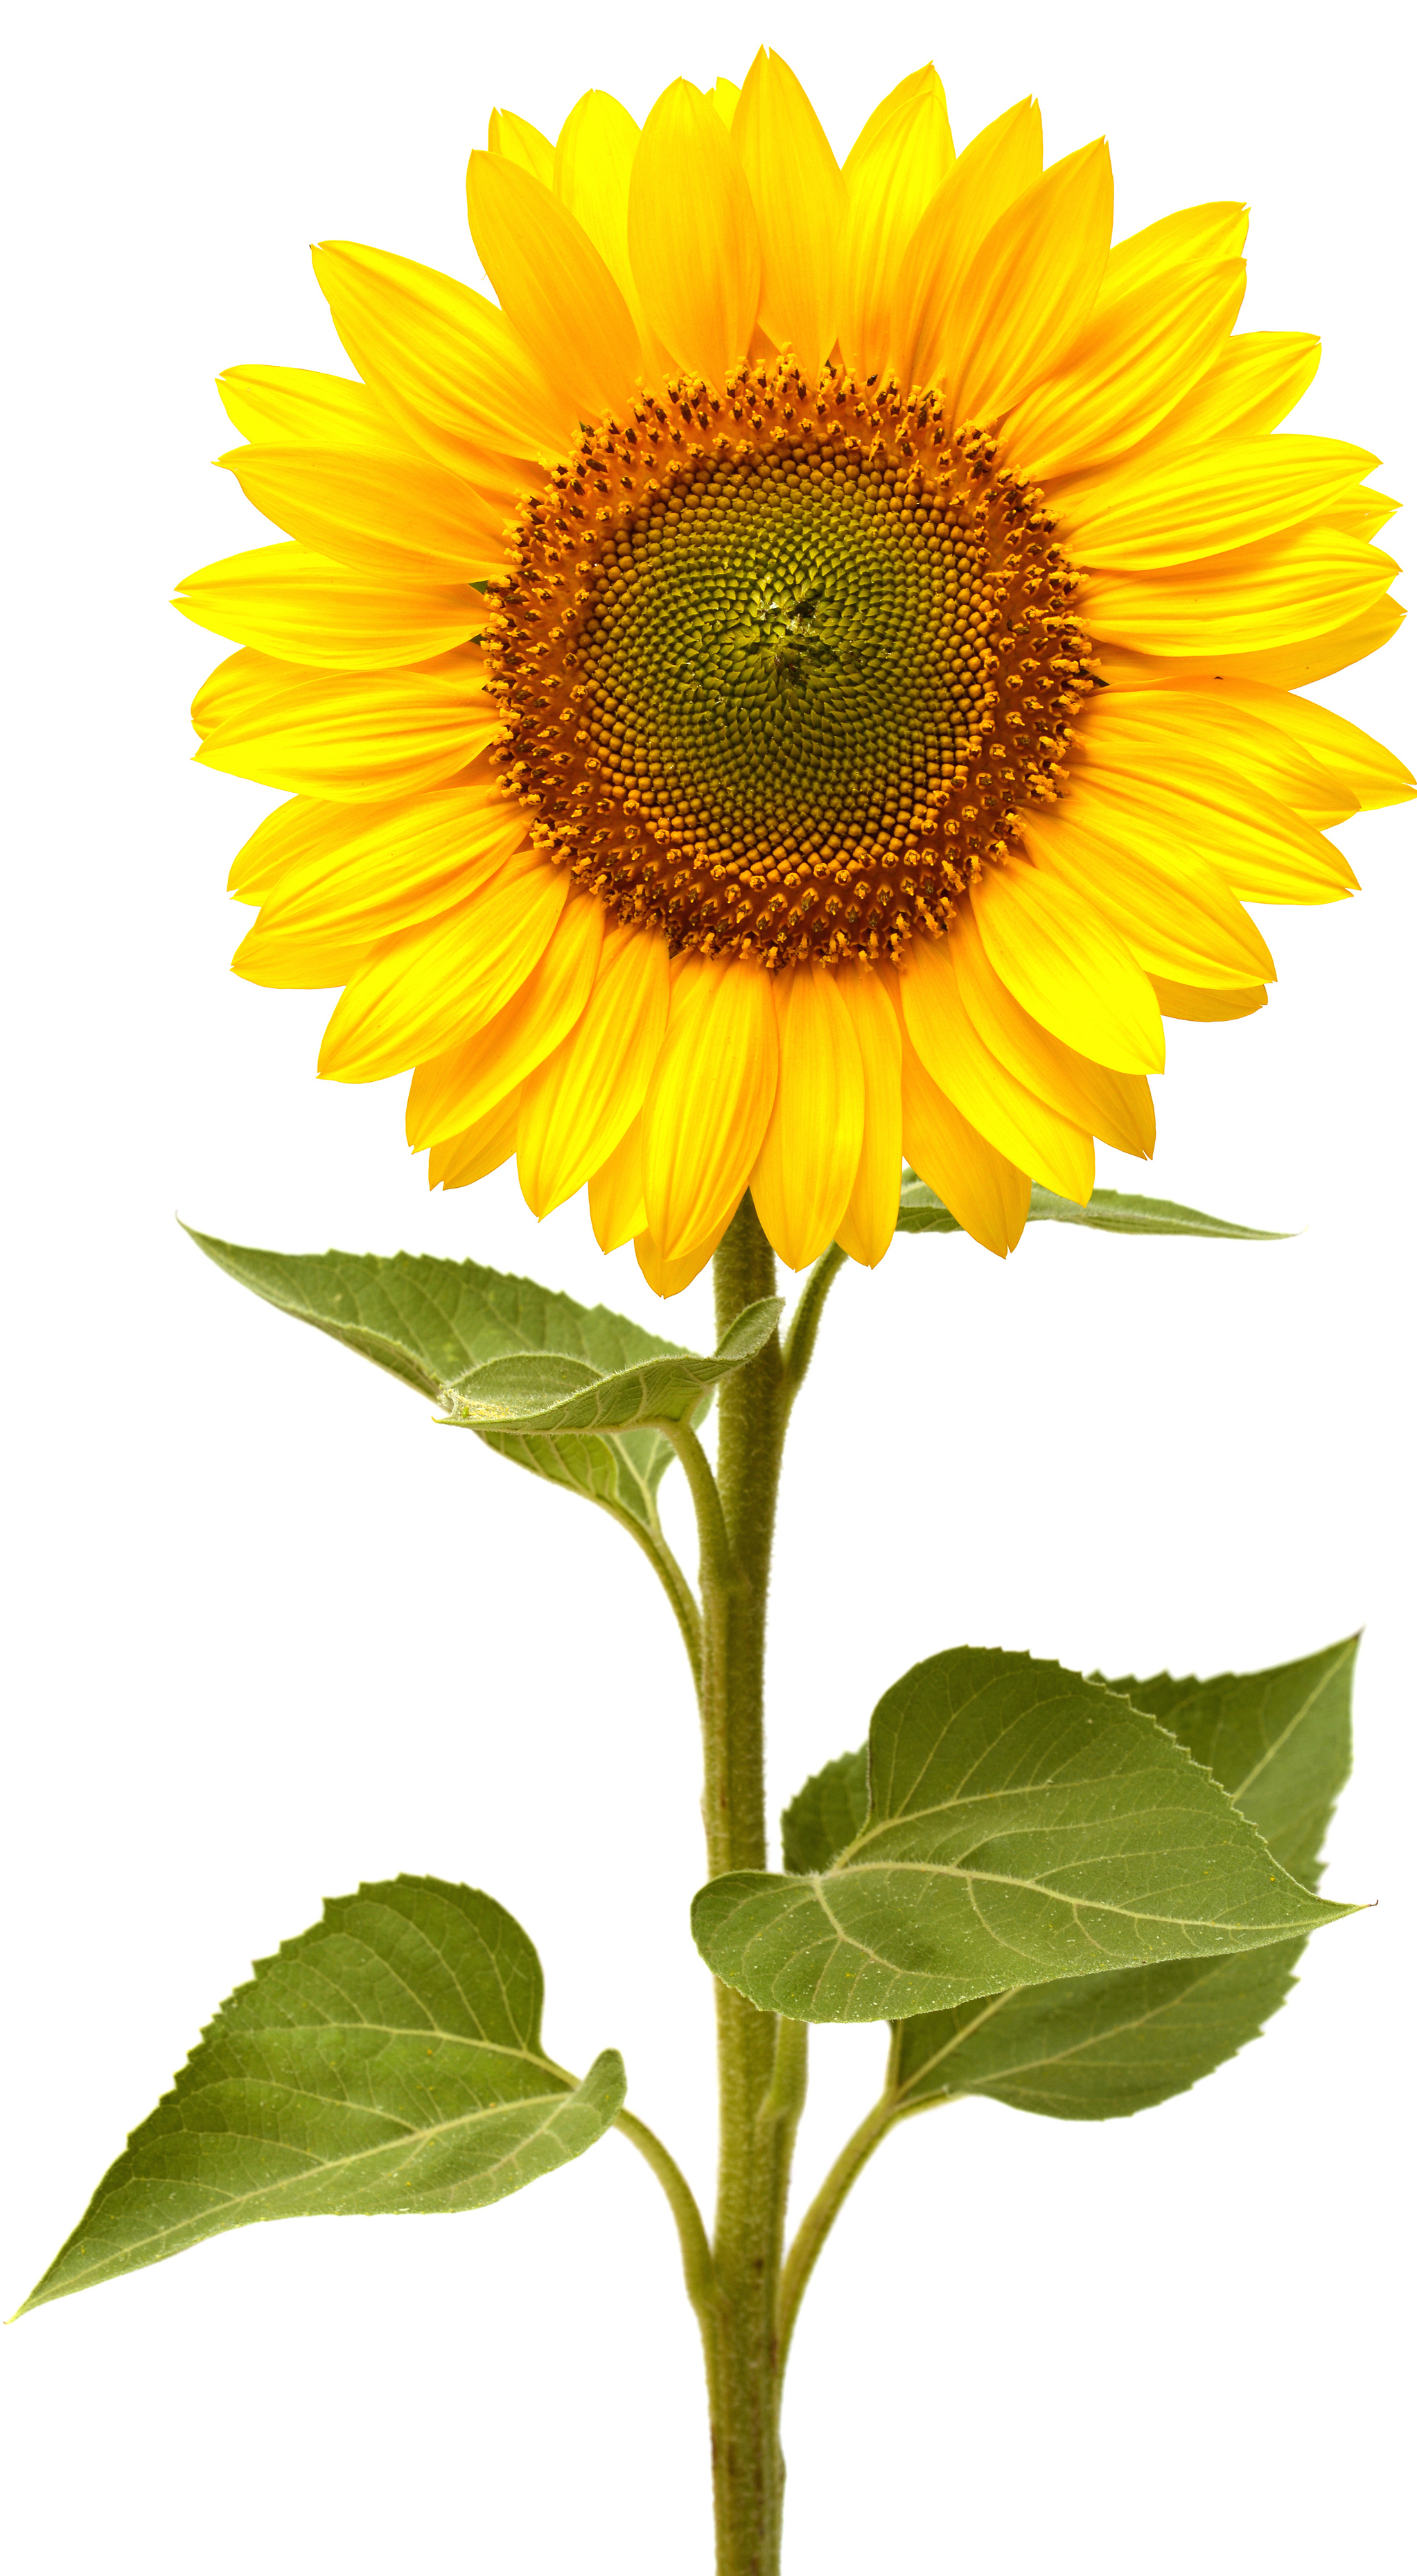 Images, Wallpapers of Sunflower in HD Quality HBC333